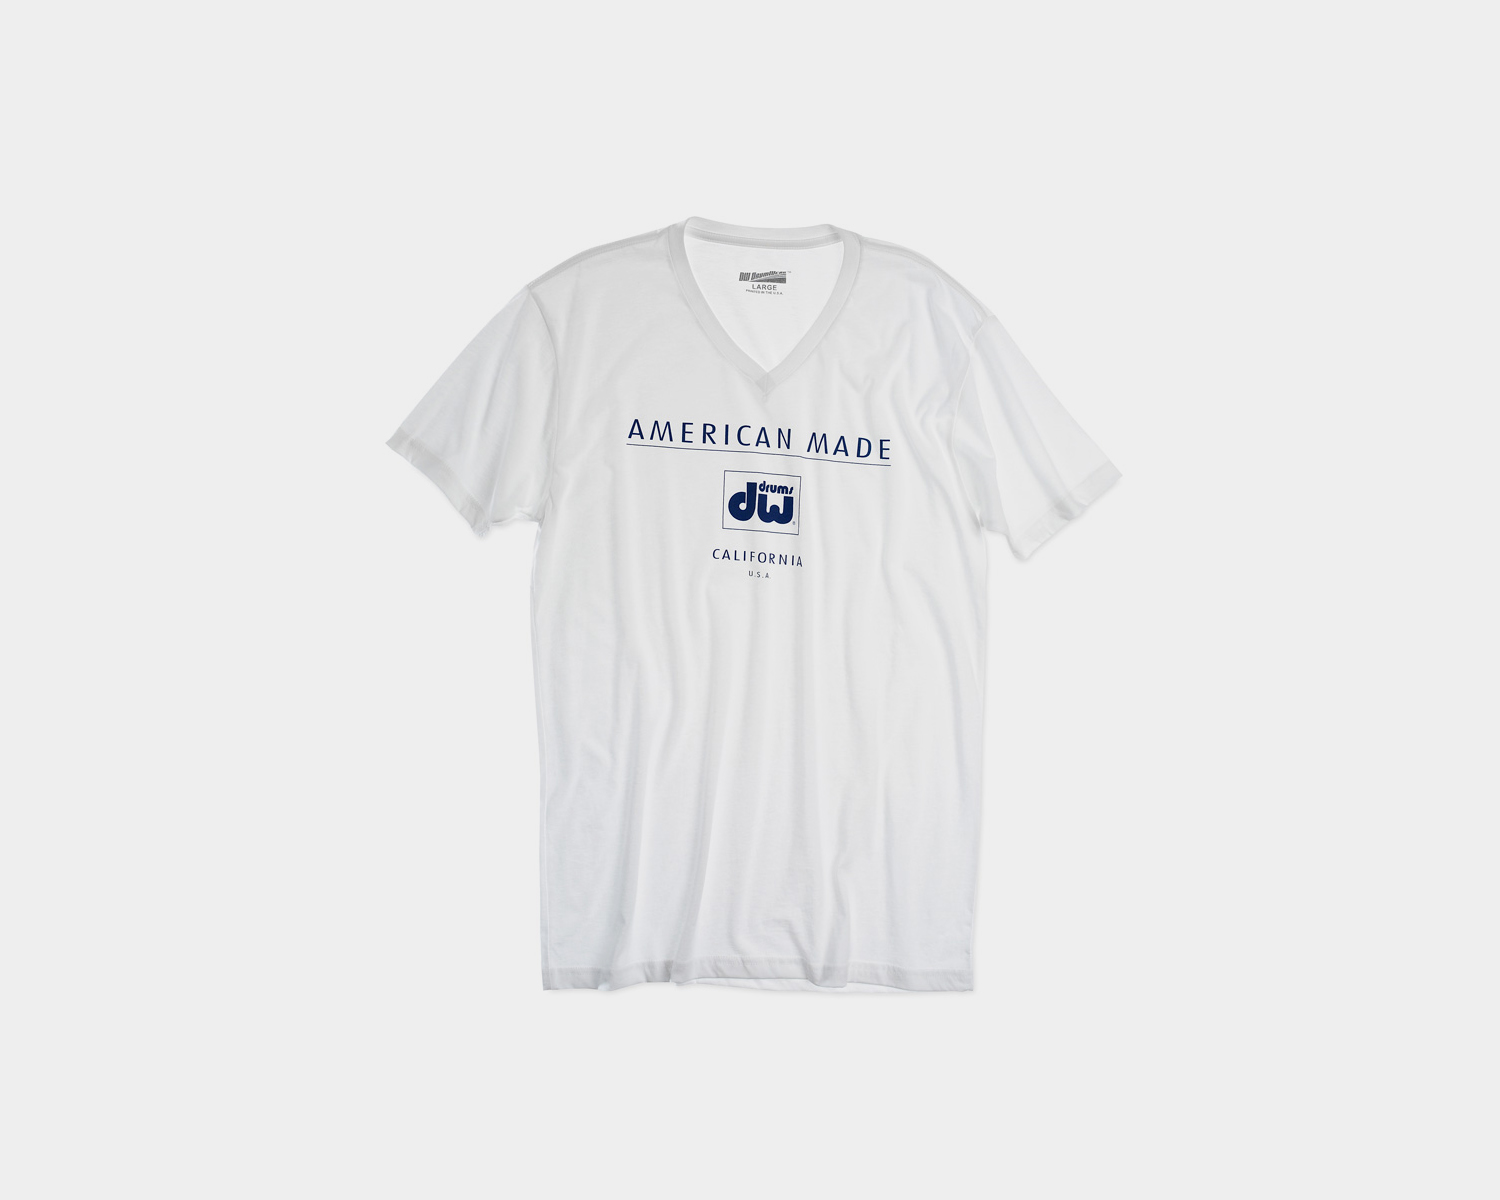 American_made_Shirt_Front